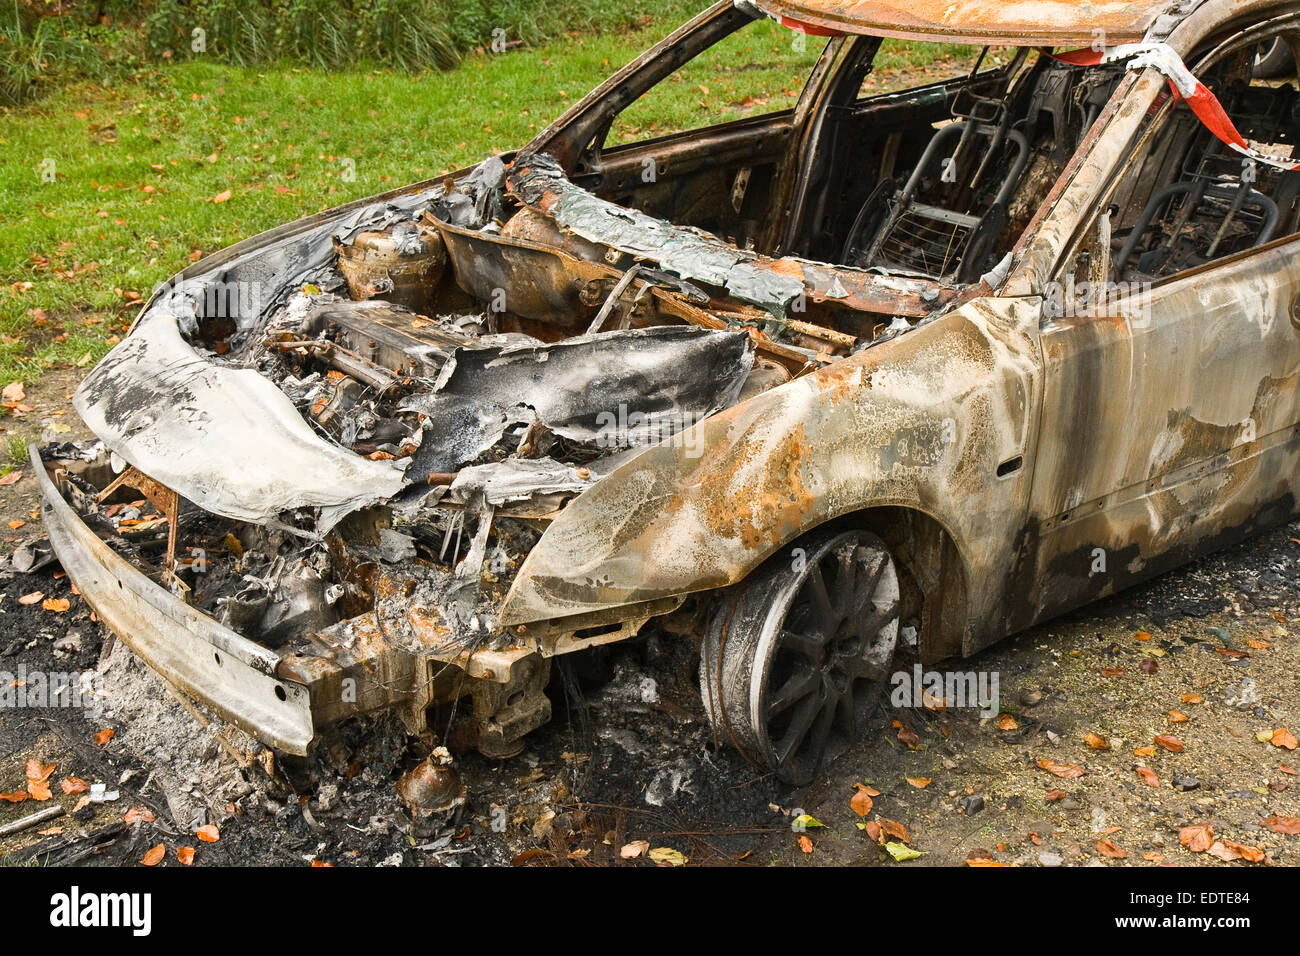 Getaway car destroyed by a fire - Stock Image